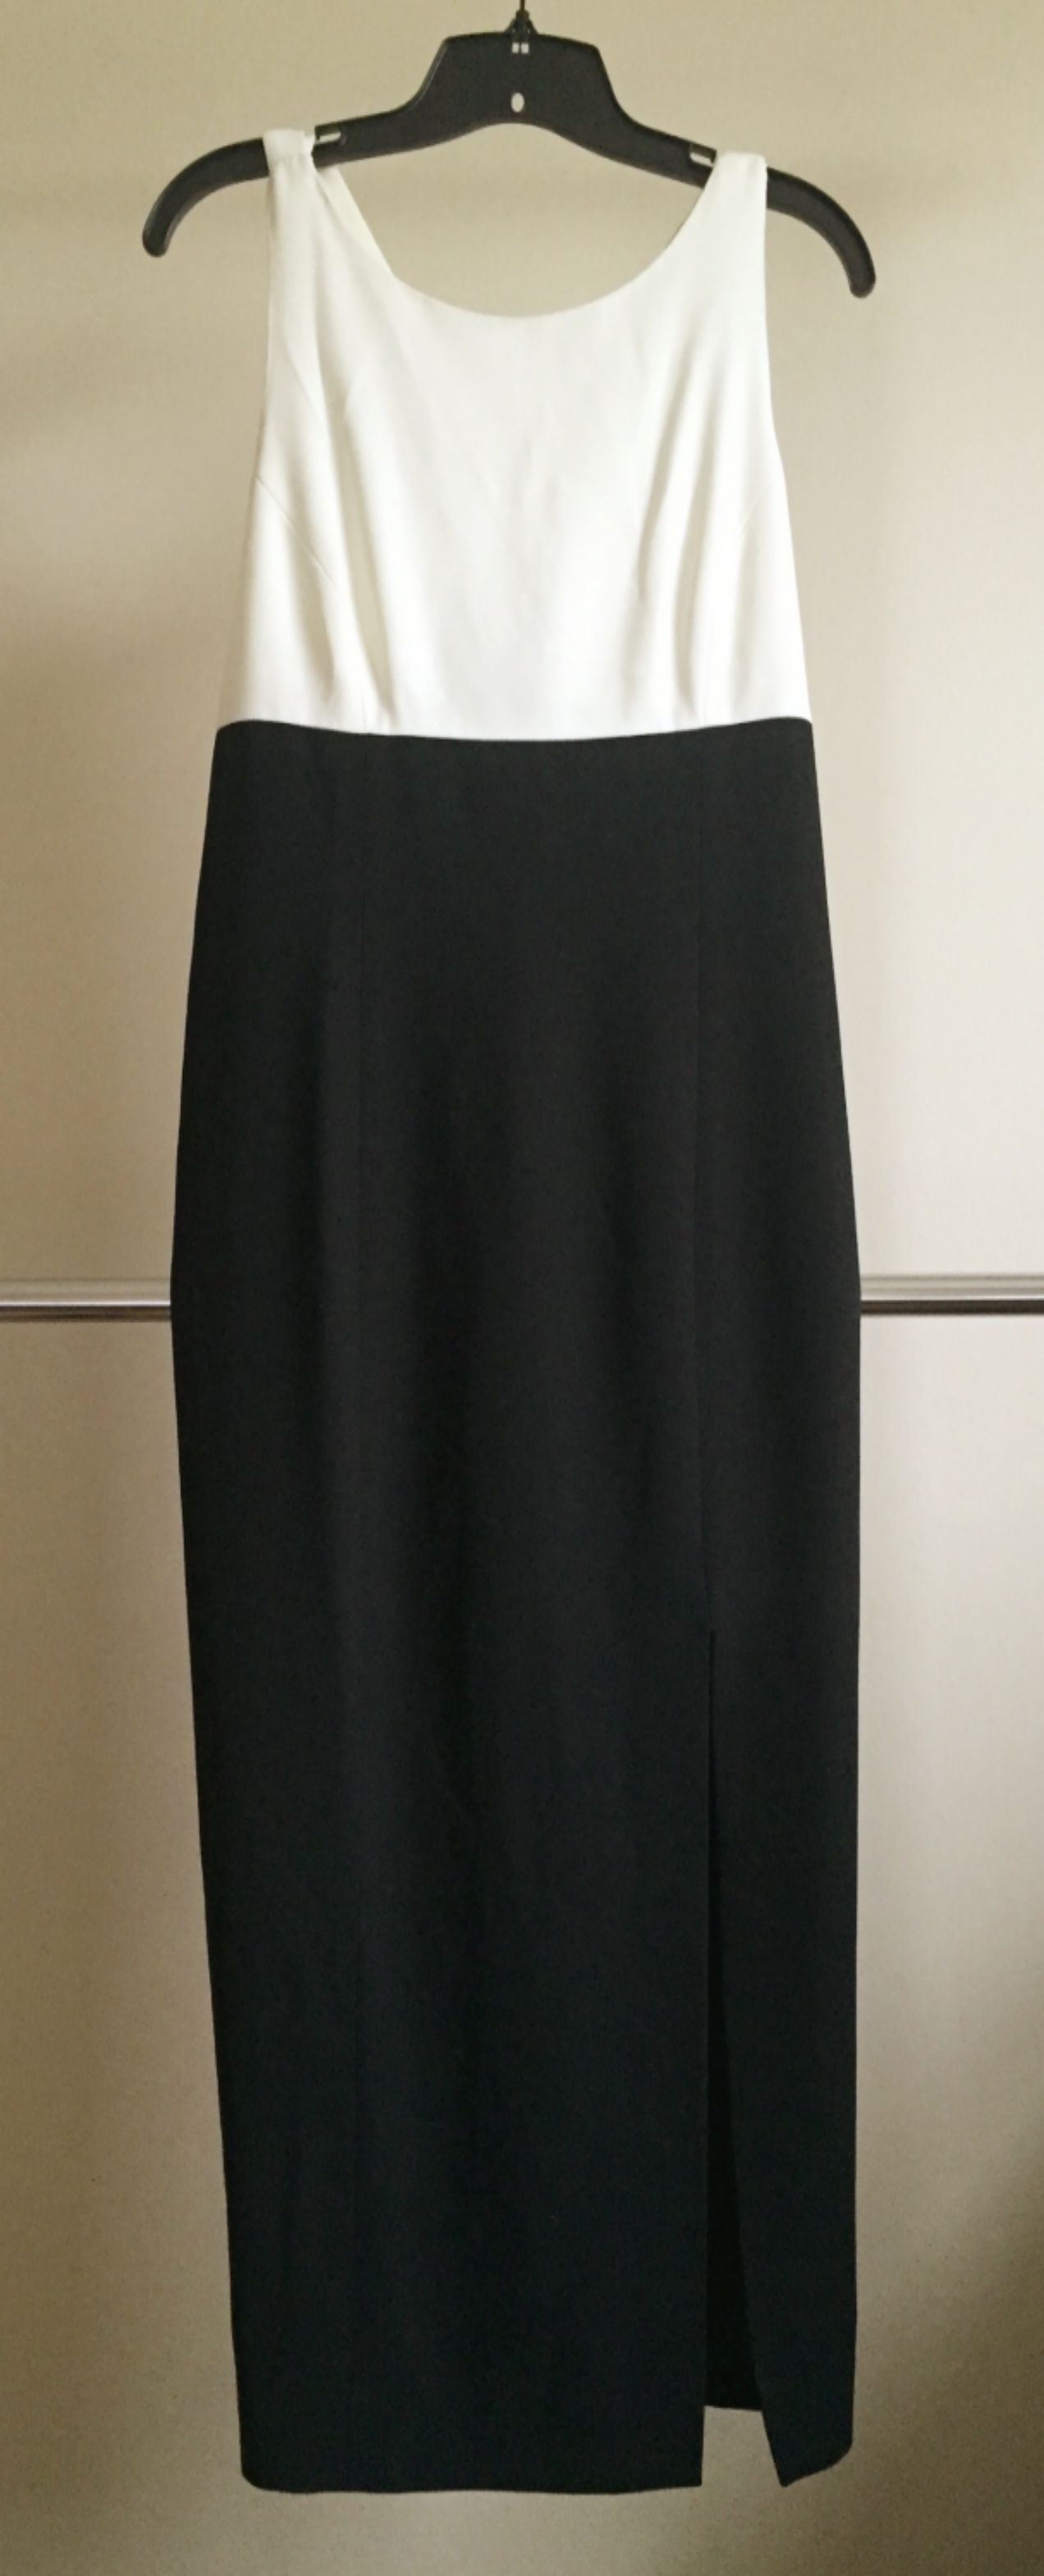 Black And White Floor Length Formal Dress By Liz Claiborne Size 10